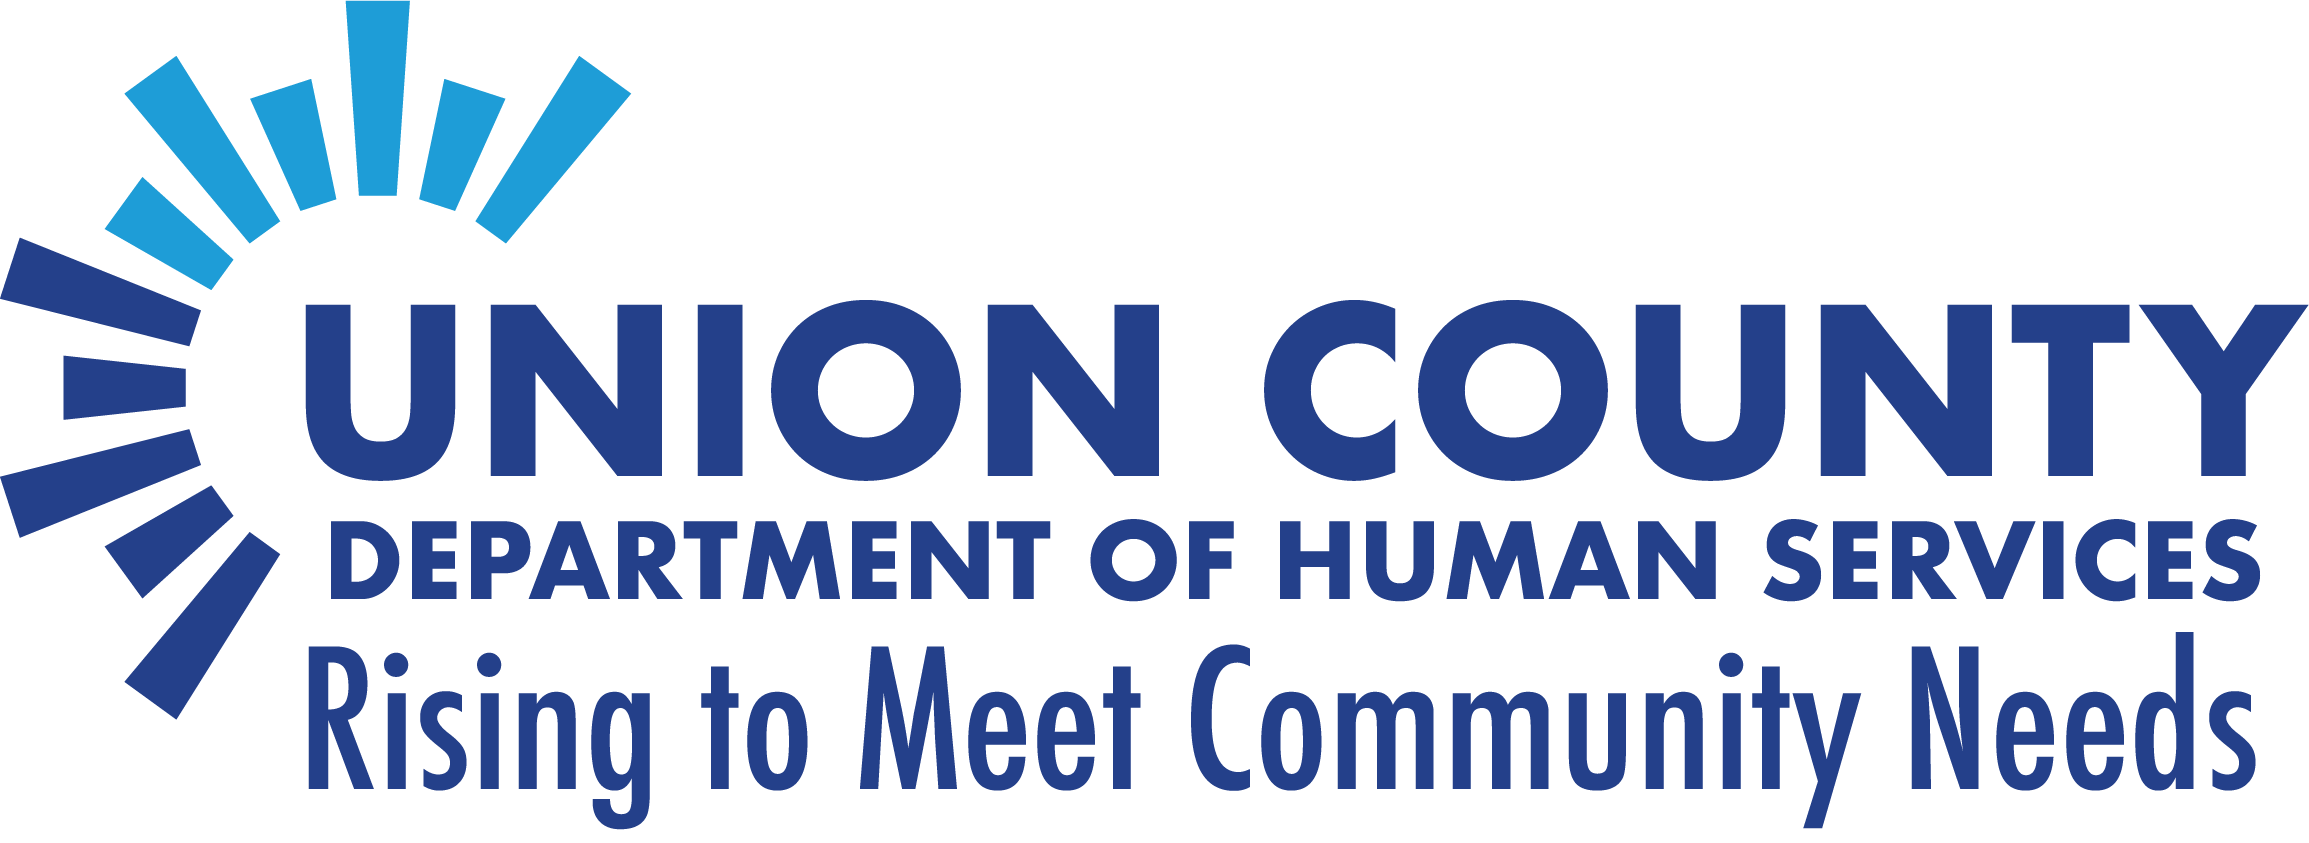 Union County Department of Human Services Department